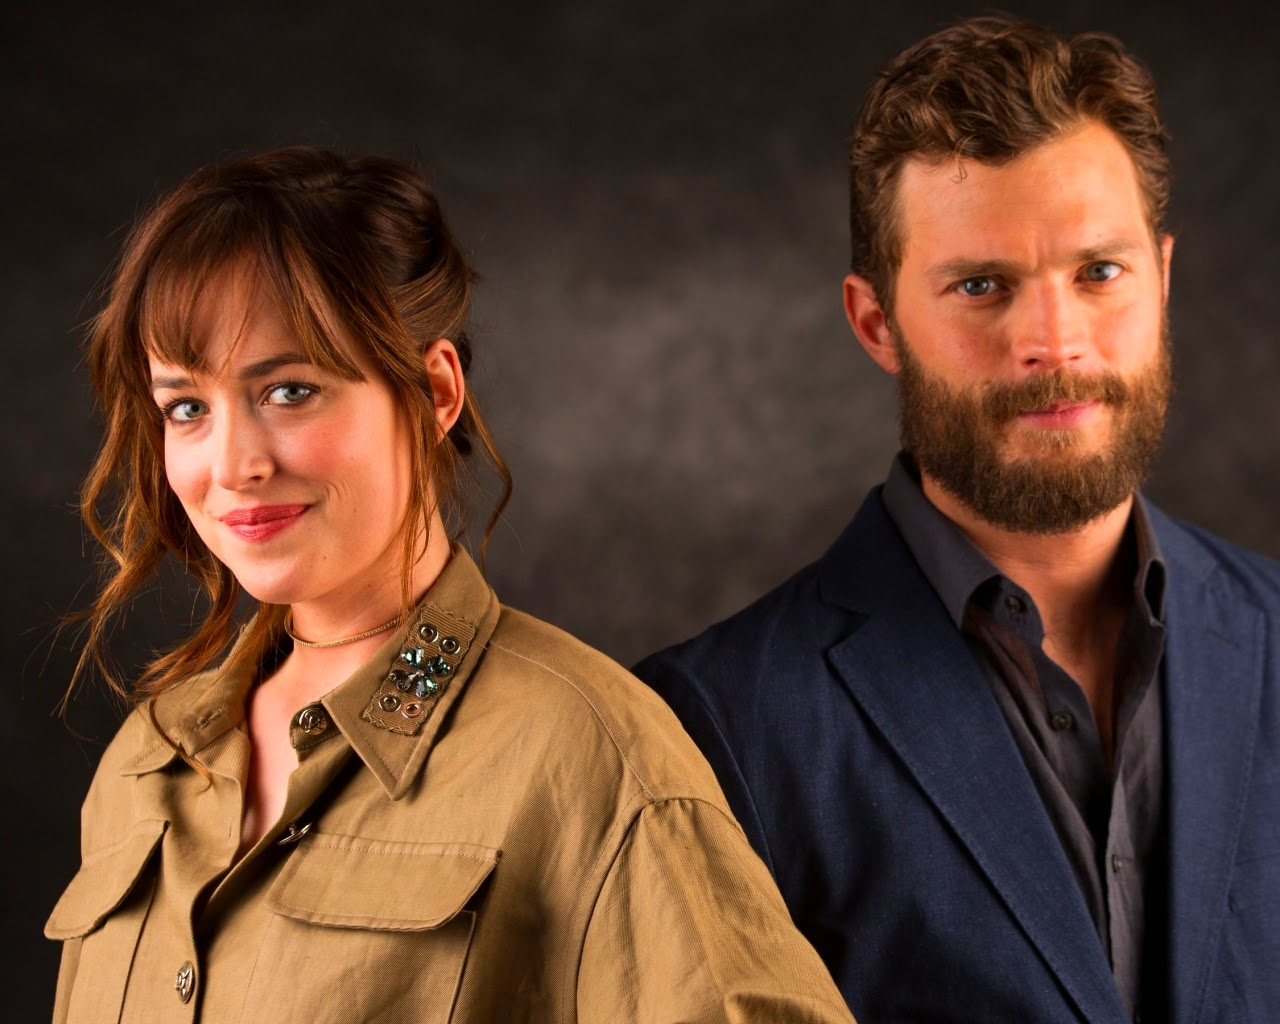 Christian And Anastasia Fifty Shades Of Grey Wallpaper 40692875